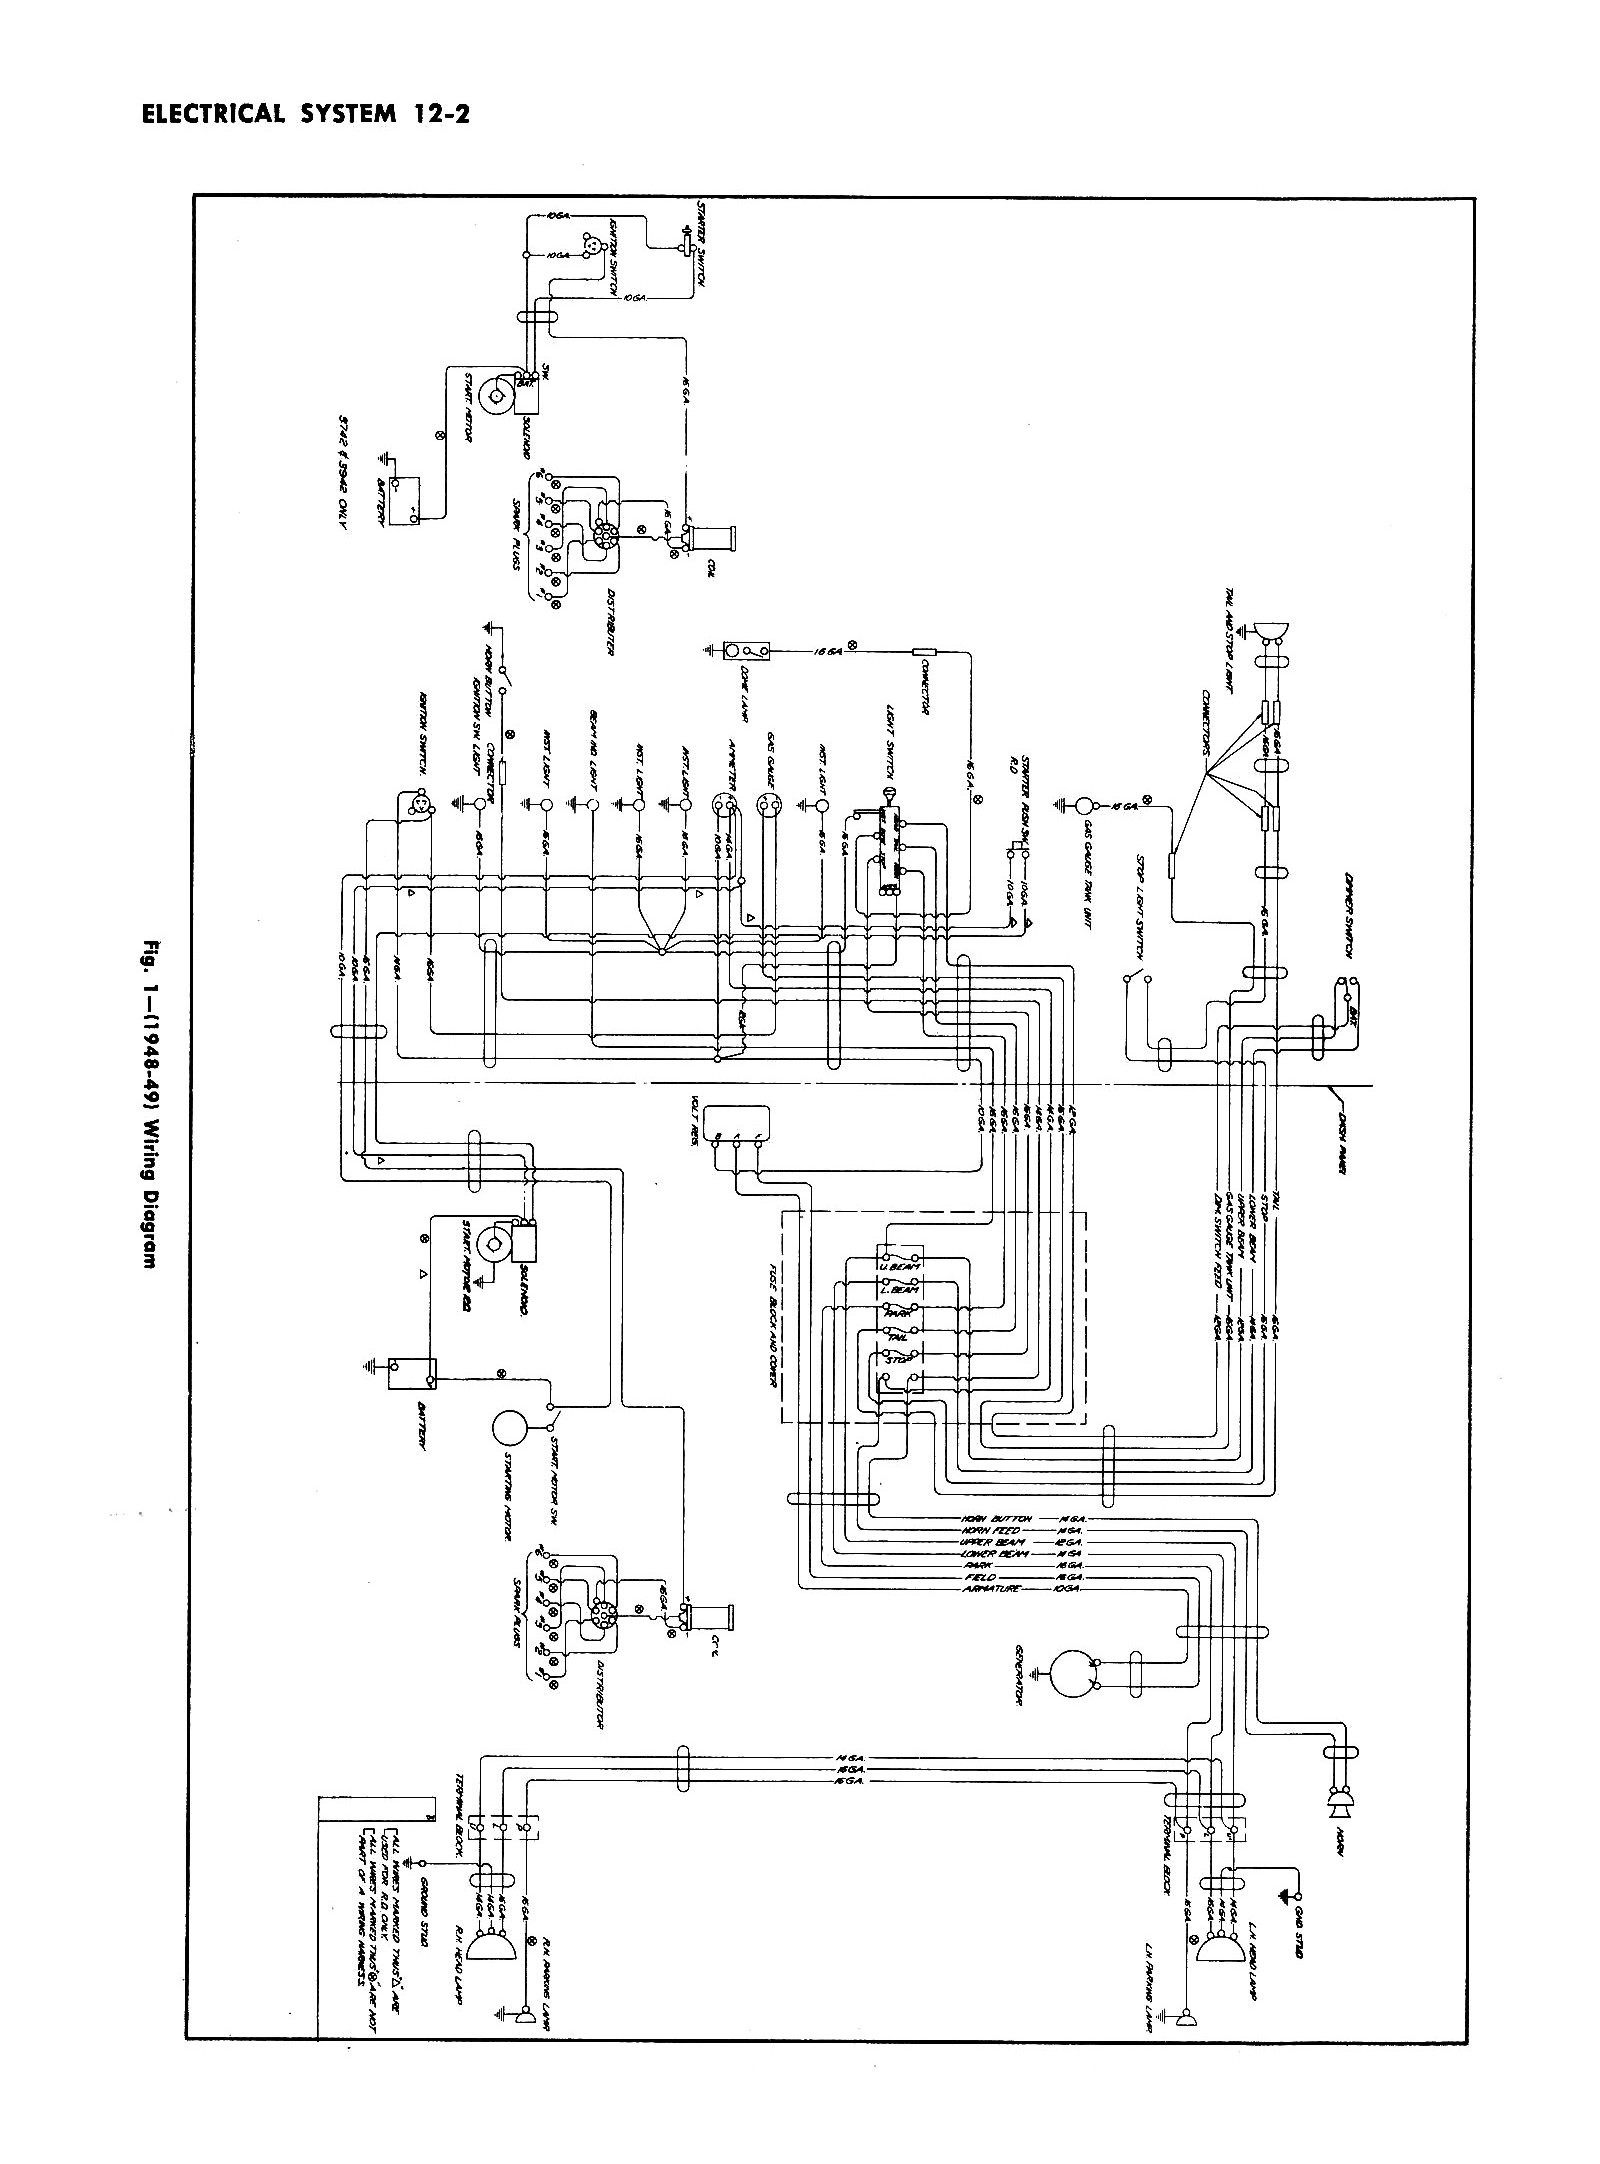 48car truck wiring diagrams manual truck wiring diagrams instruction vulcan cx90 wiring diagram at alyssarenee.co